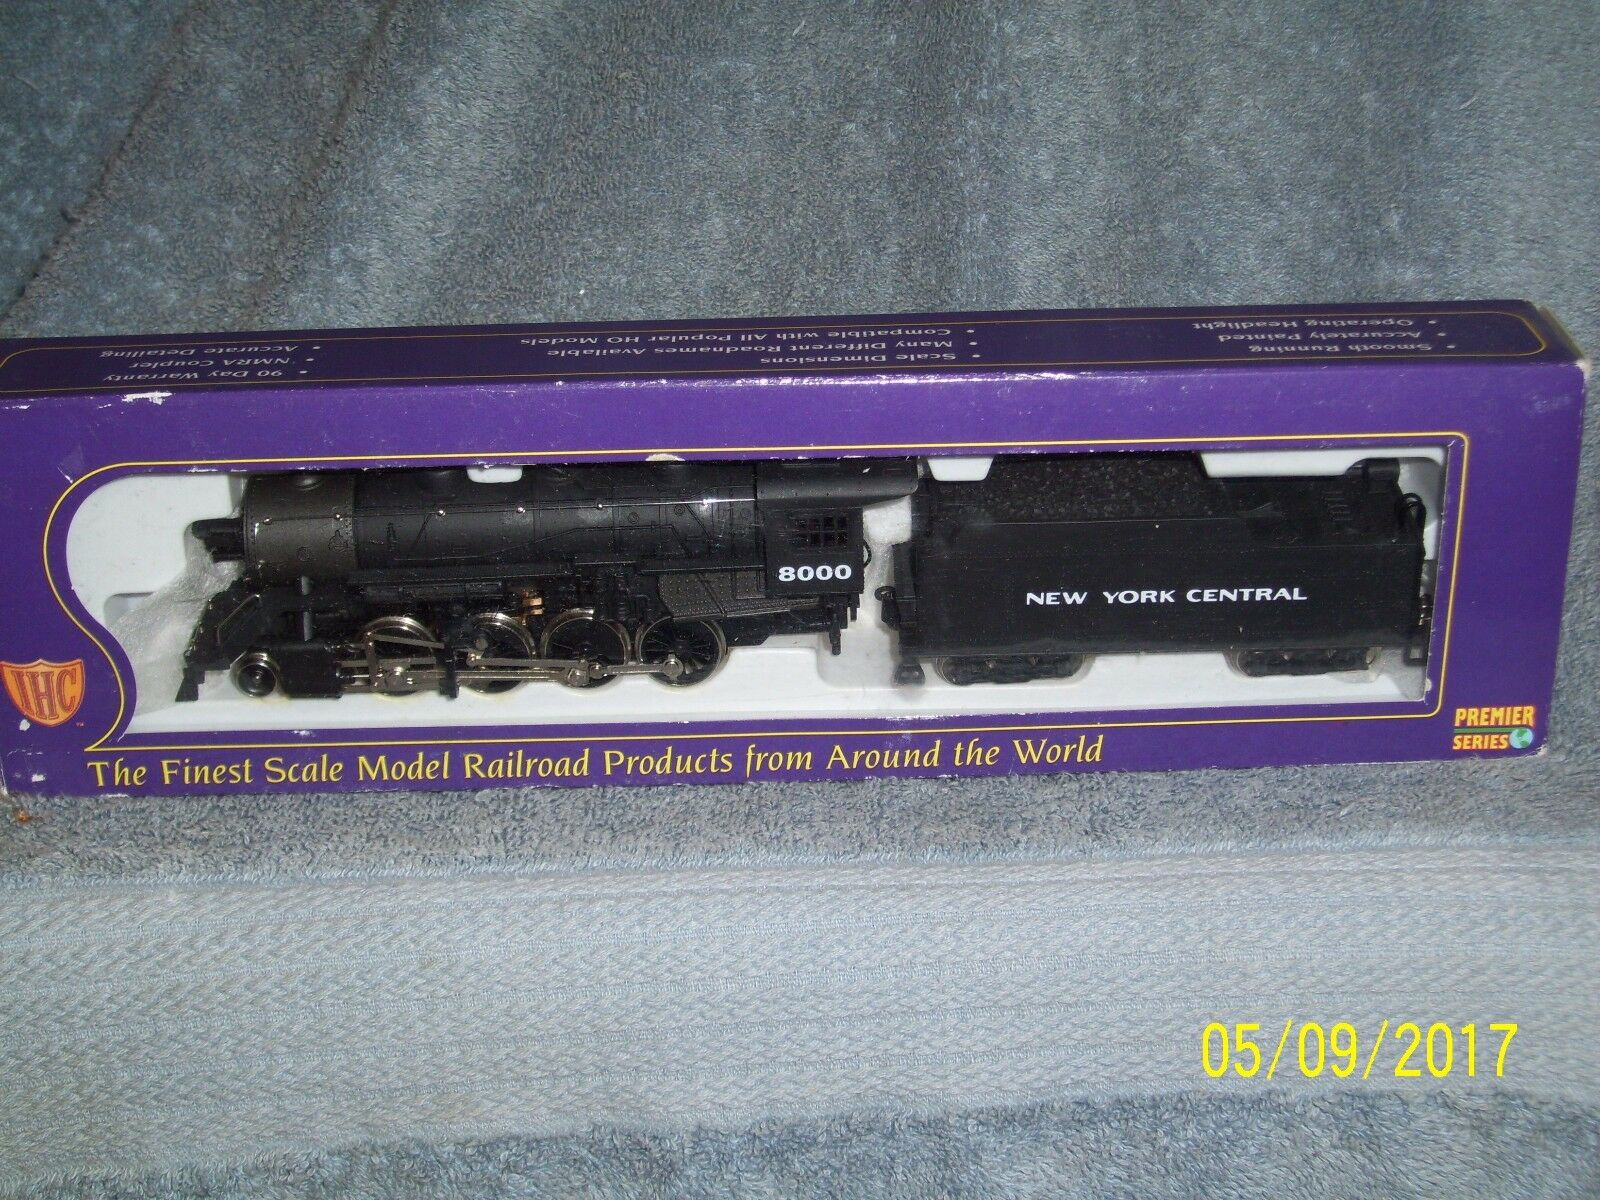 IHC PREMIER HO SCALE  M9528  2-8-0 CONSOLIDATION NEW YORK CENTRAL  8000